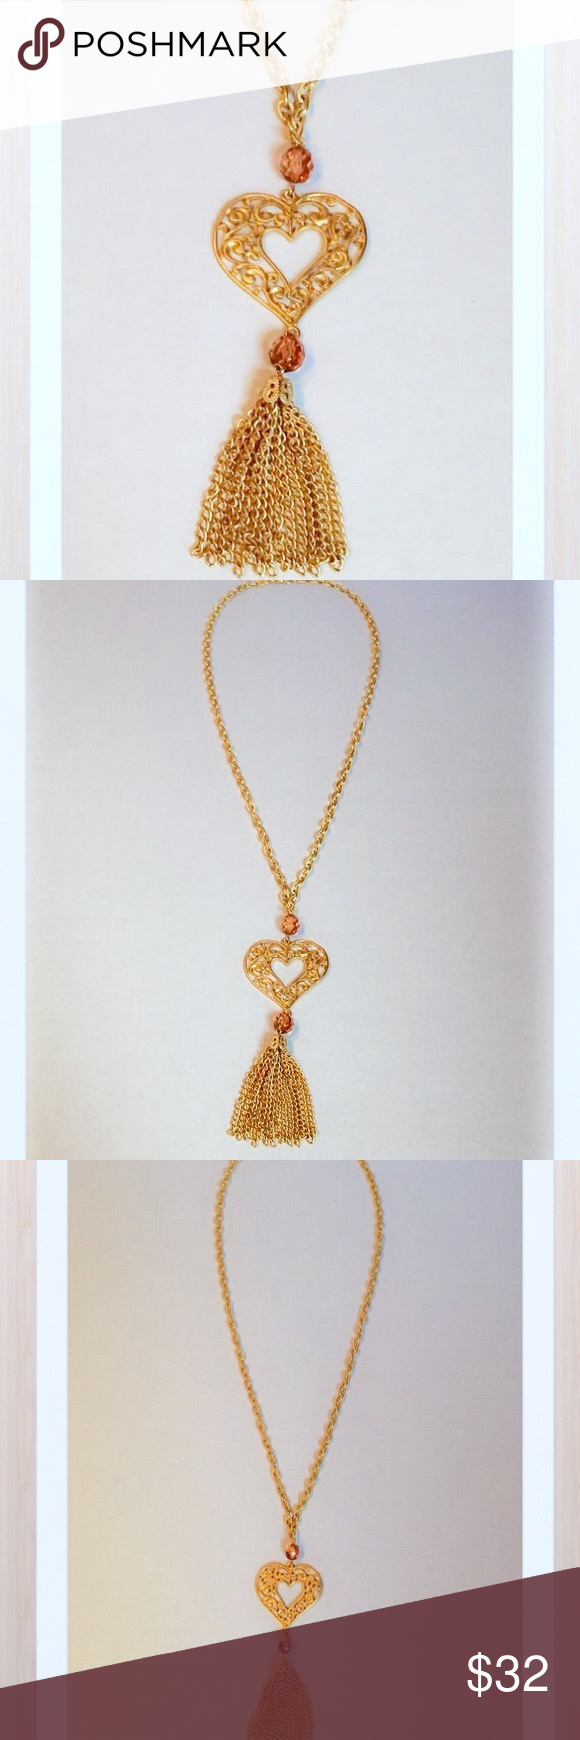 🆕 Long Gold Crystal Heart & Tassel Necklace, Bnwt Boutique | My With Regard To Latest Ornate Hearts Tassel Necklaces (View 25 of 25)